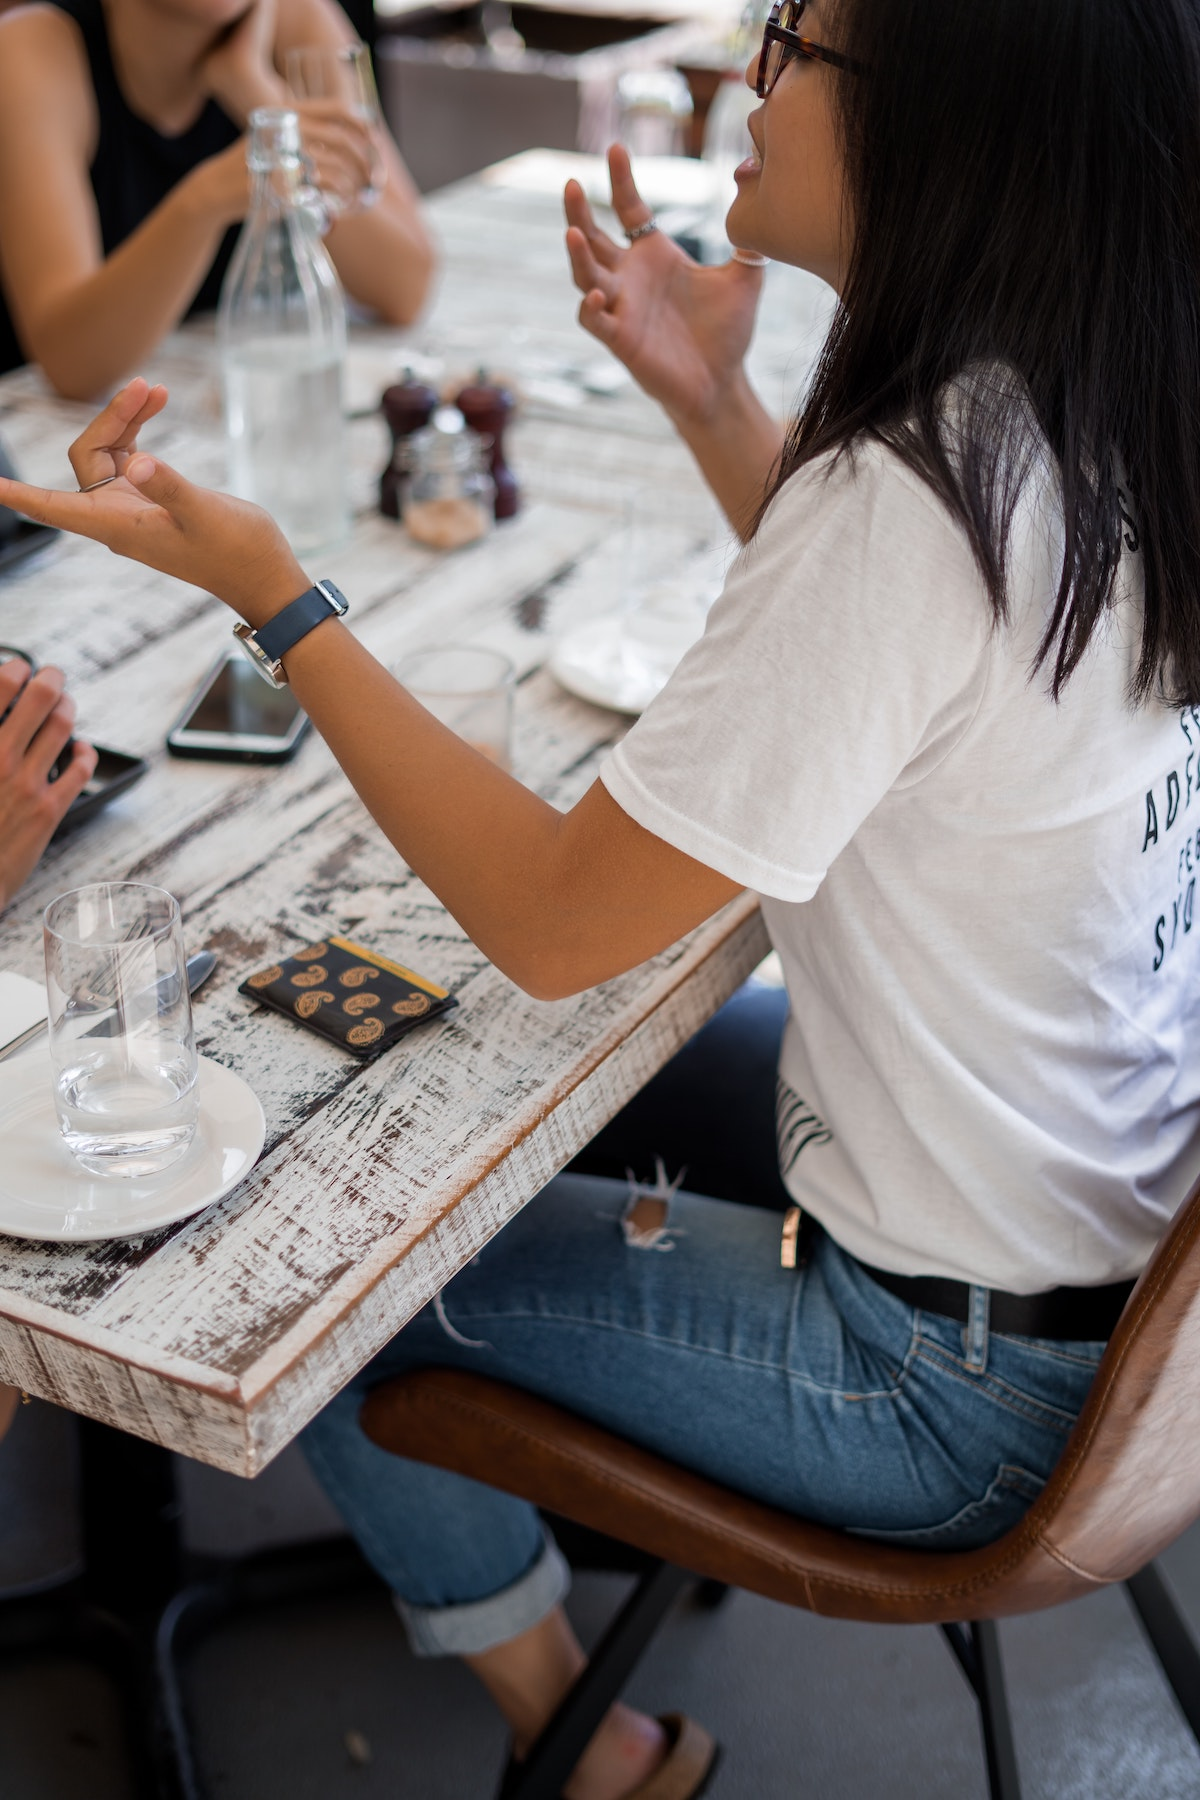 power of a voice over: people chatting across a table